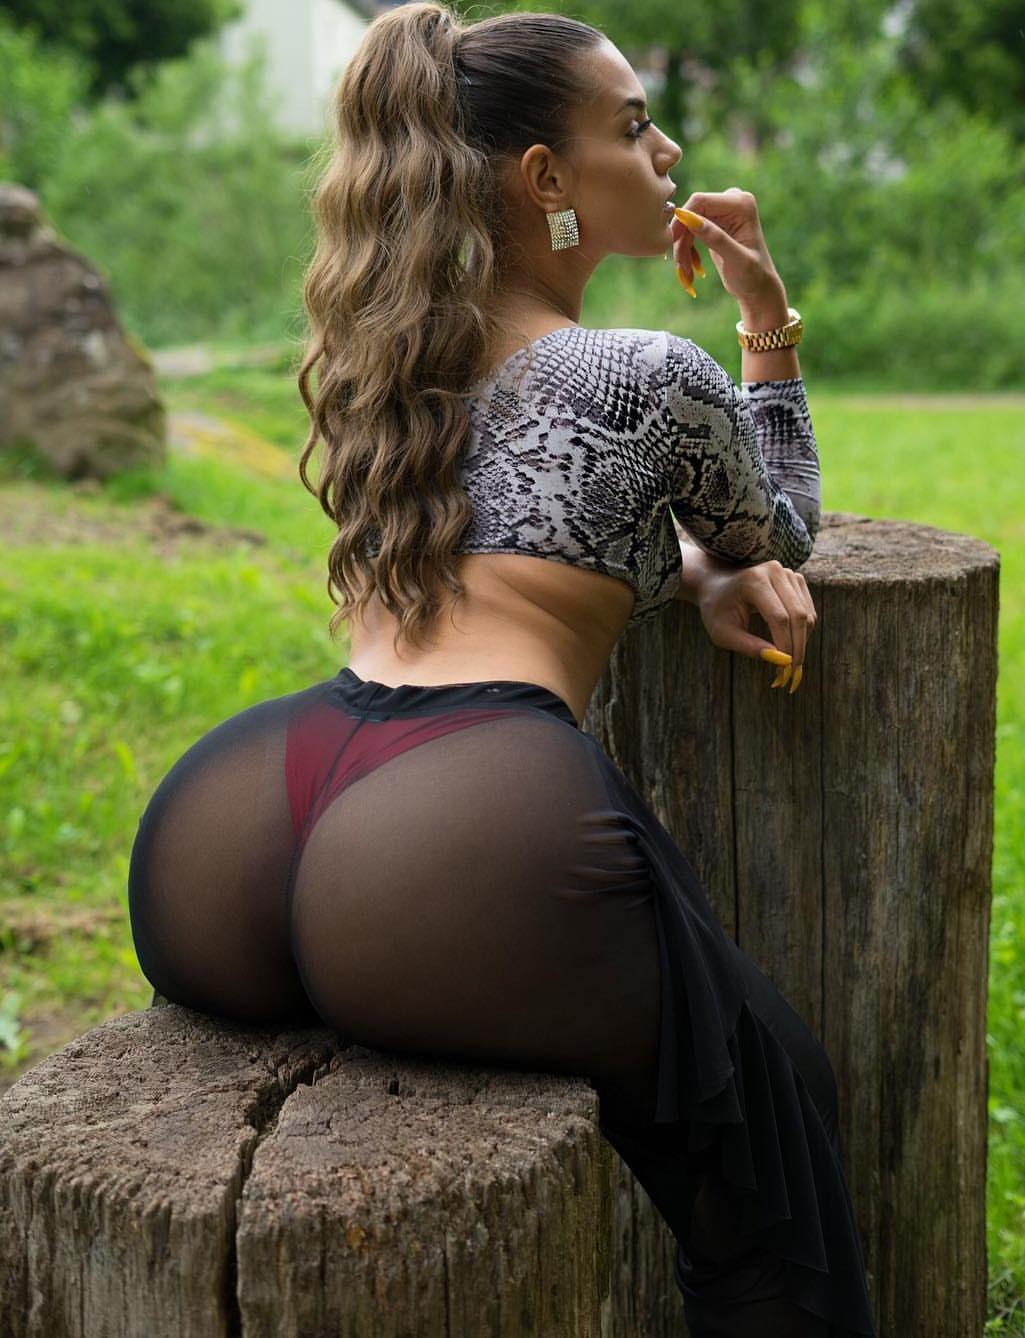 Exercises to get rid of a flat butt